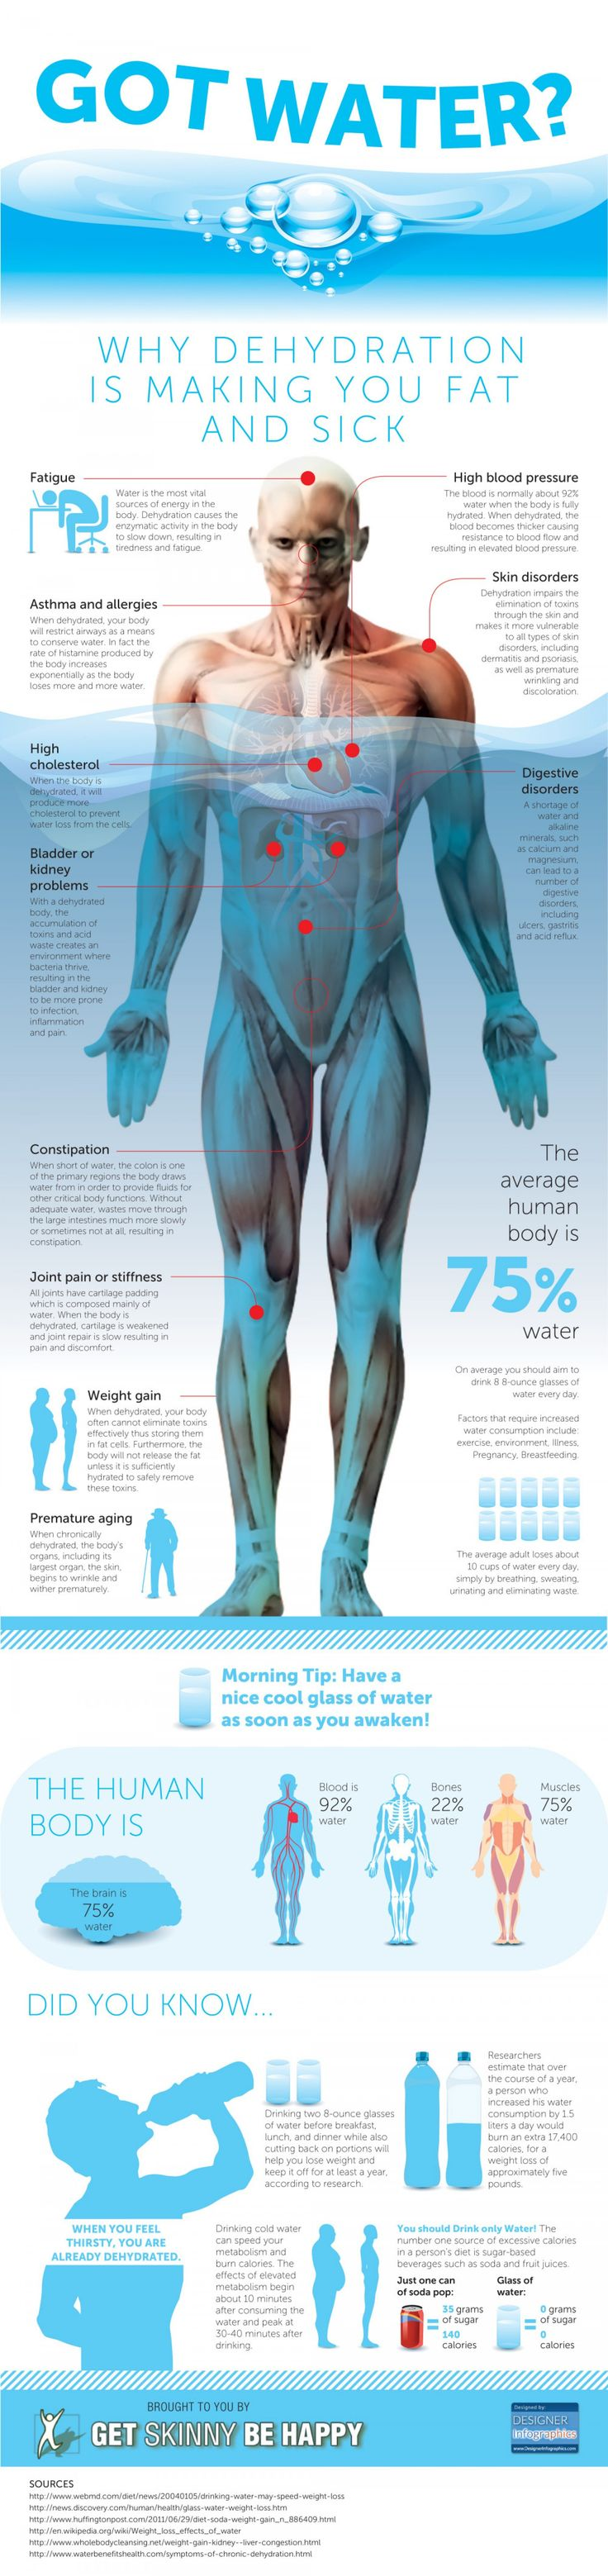 Got Water? Infographic - Why Dehydration Is Making You Fat and Sick